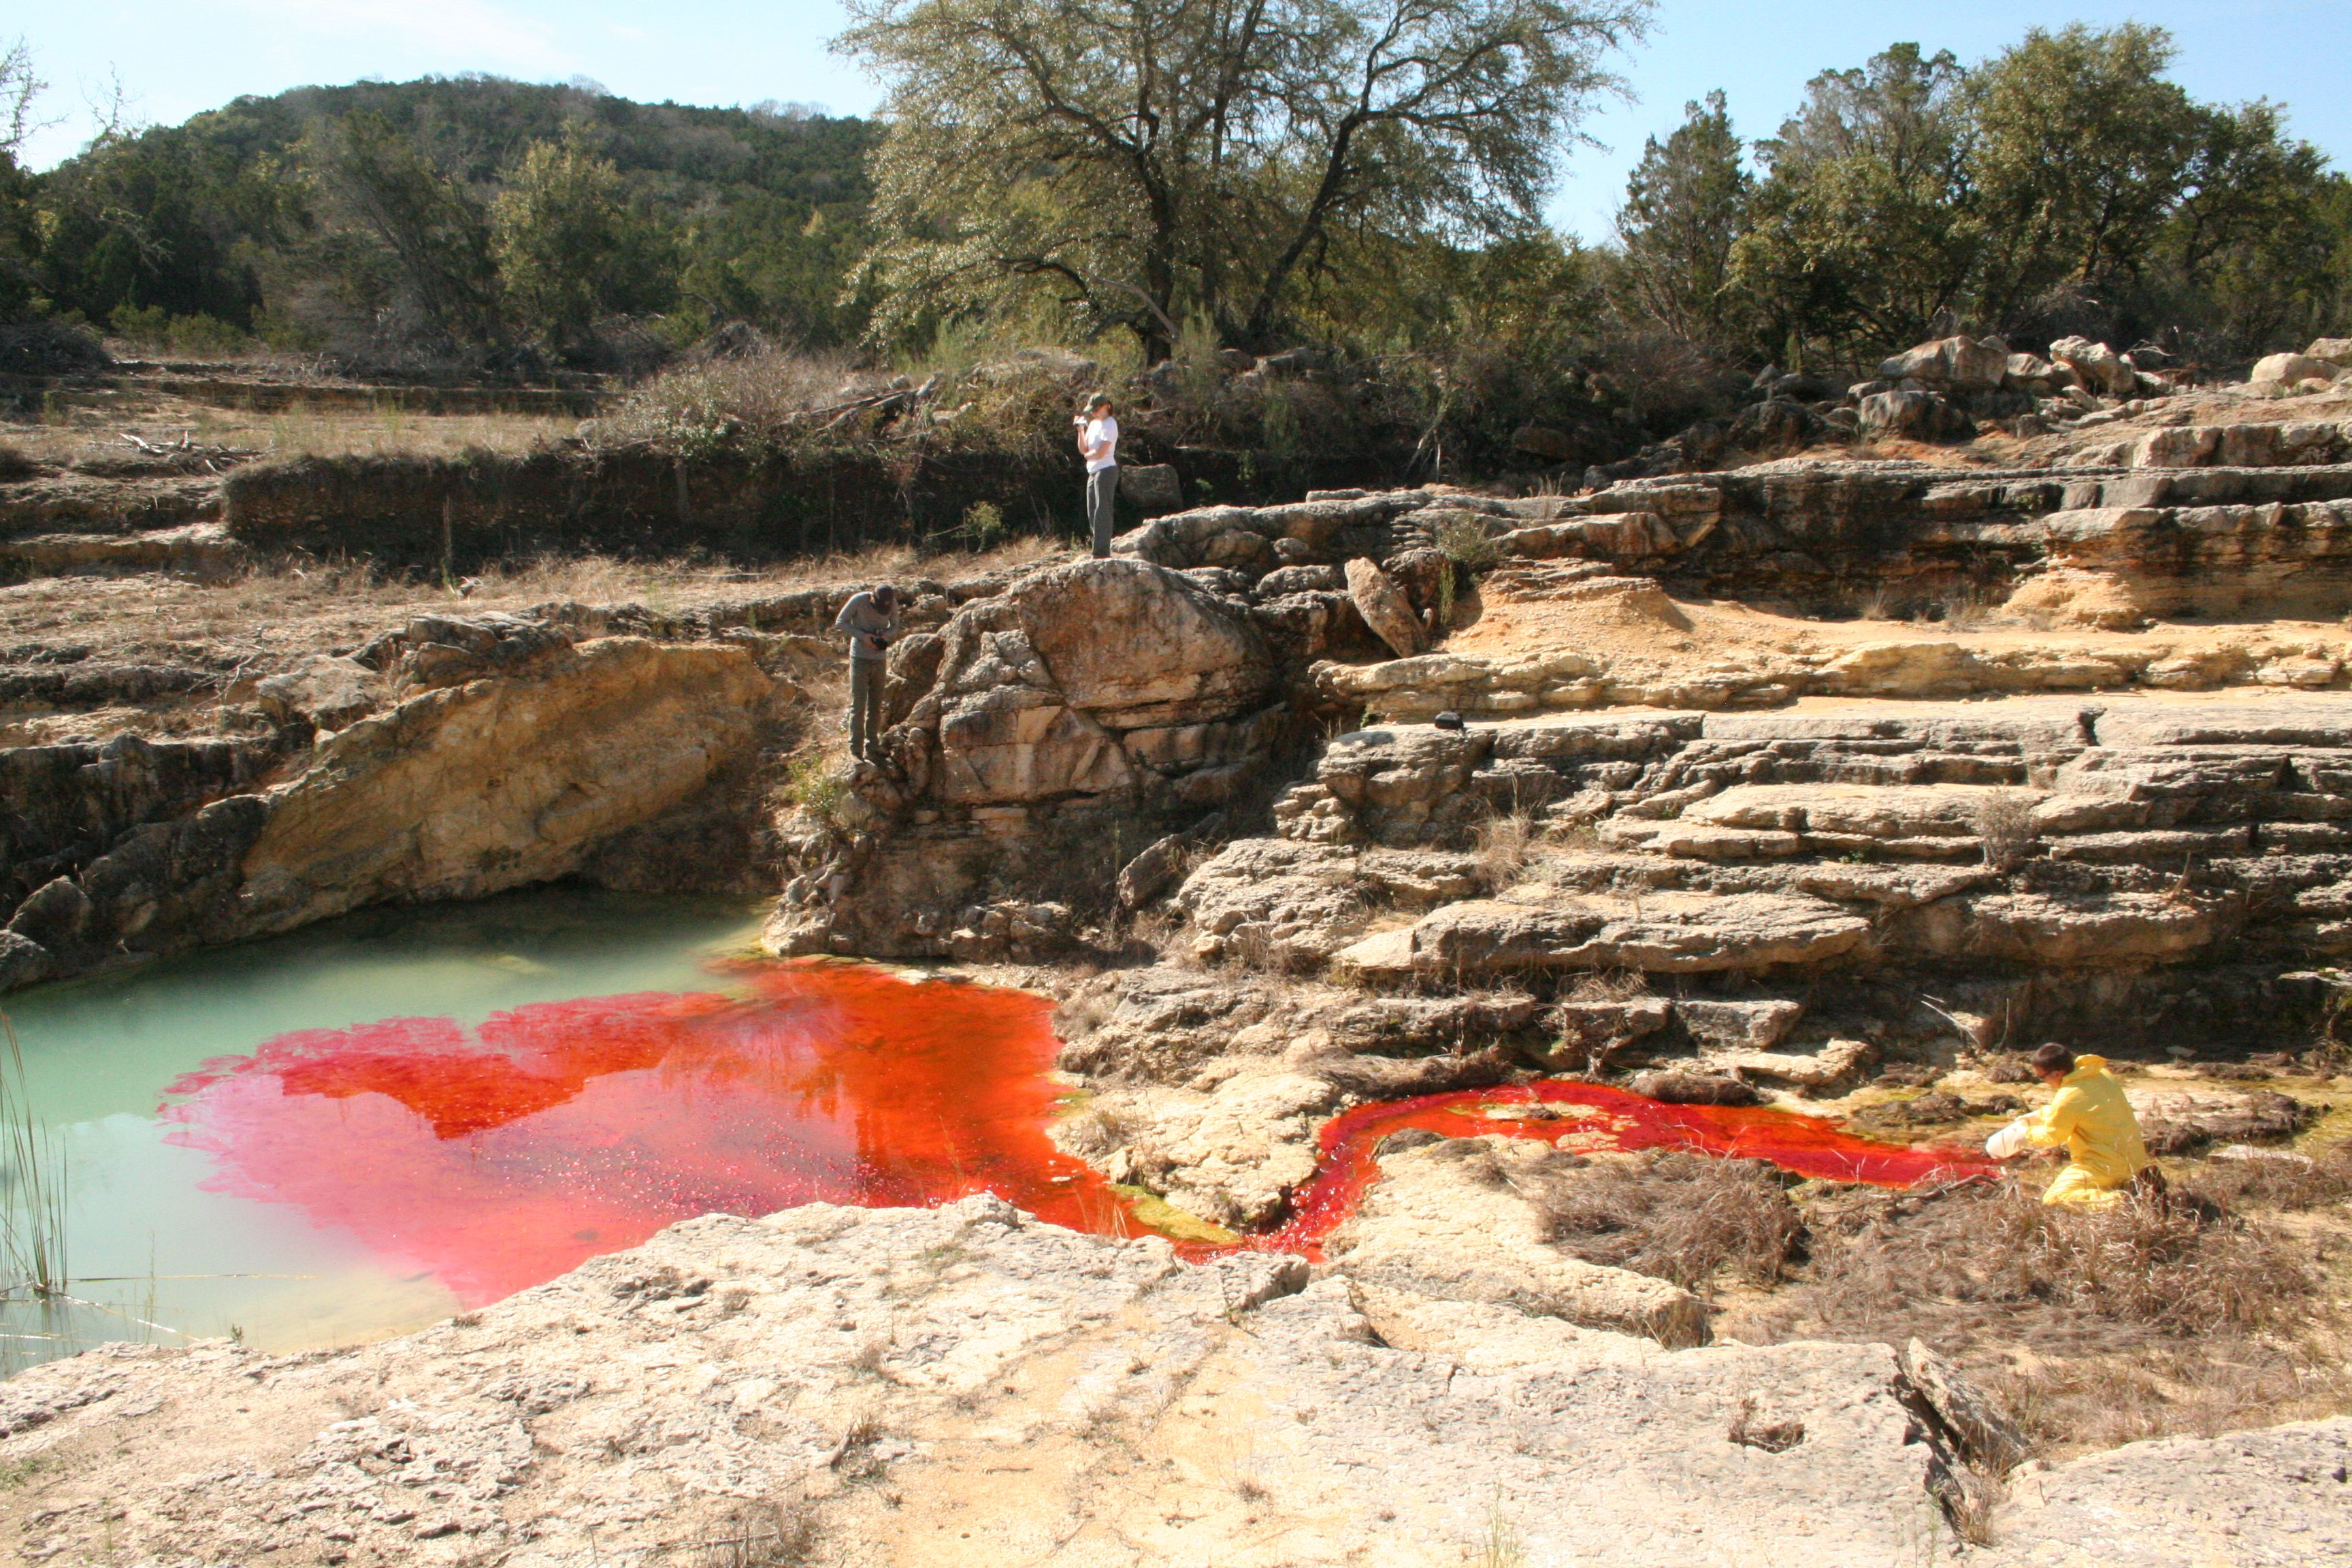 Injection of eosine dye at Canyon Lake Gorge.  The dye injection was in support of a study with Guadalupe Blanco River Authority and Southwest Research Institute (SWRI) as part of SWRI's investigation of the role of faults and fractures in controlling groundwater flow in the Texas Hill County.